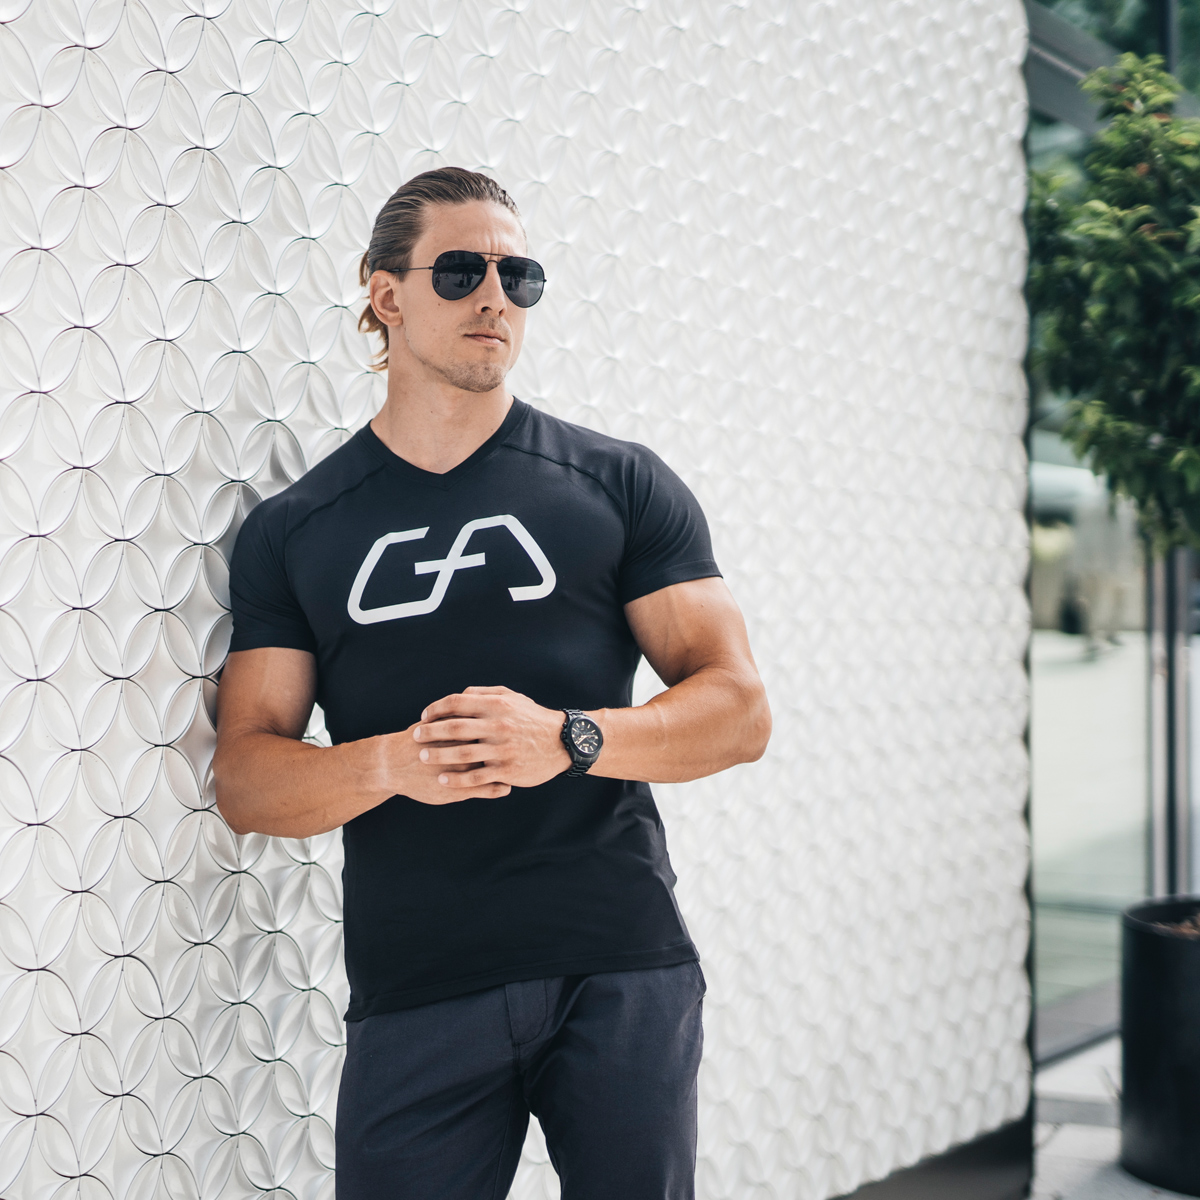 Everyday wear for men's daily workout collection | Gym Aesthetics